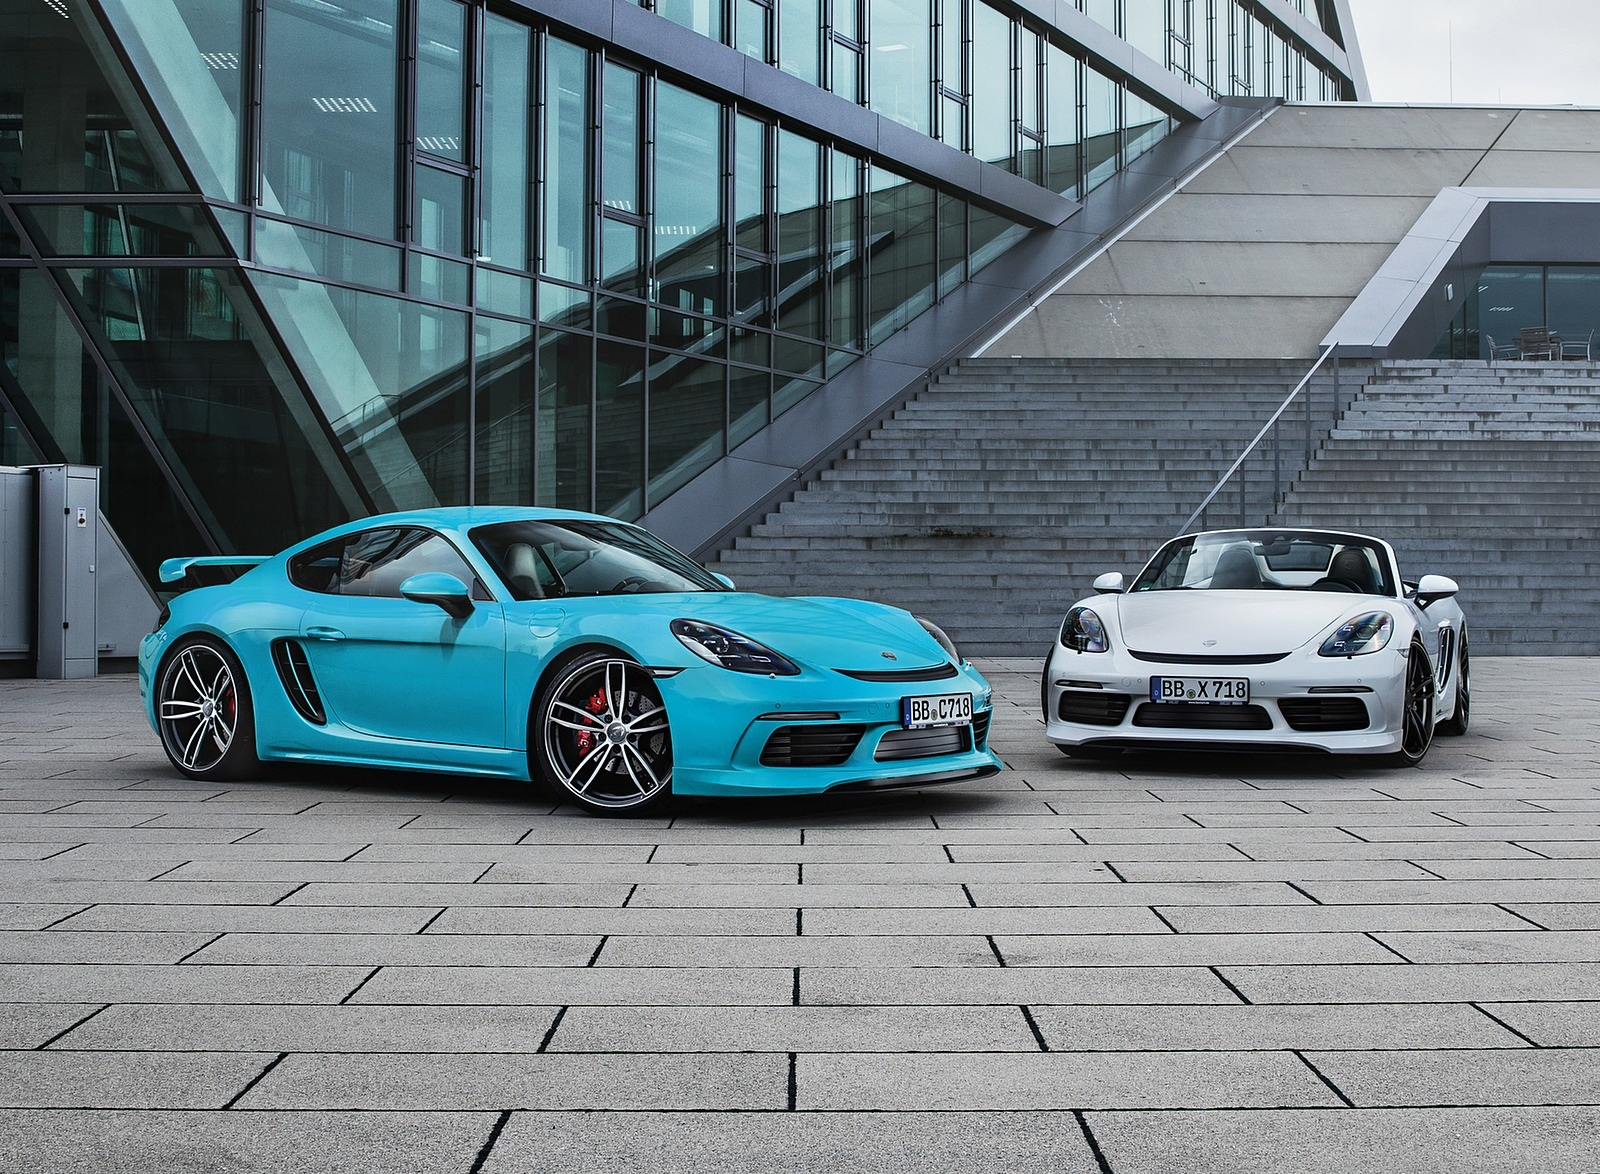 2019 TECHART Porsche 718 Boxster and Cayman Wallpapers (2)